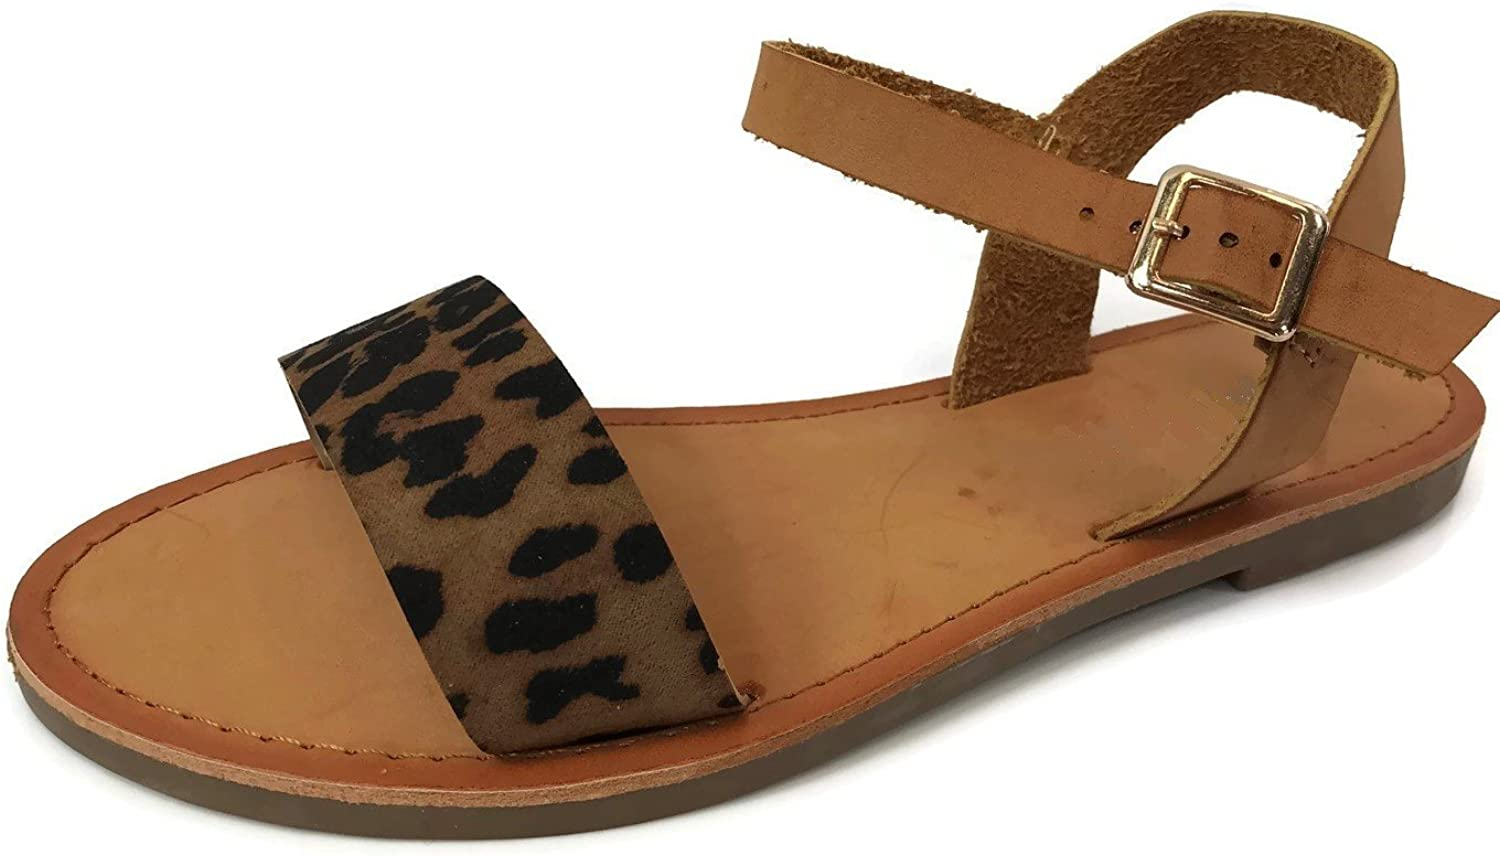 Wells Collection Womens ANIBEL Over The Toe Single Strap Sandal Flat with Ankle Wrap